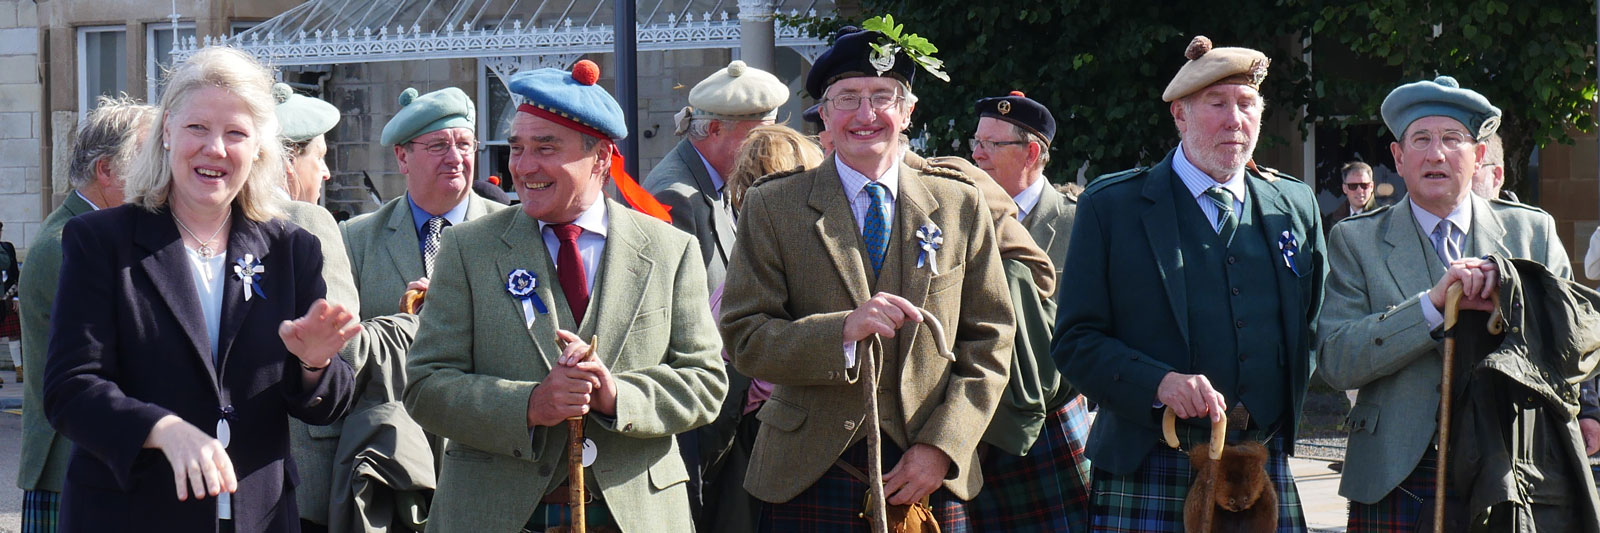 Welcome to the Members-only section of the Argyllshire Gathering website